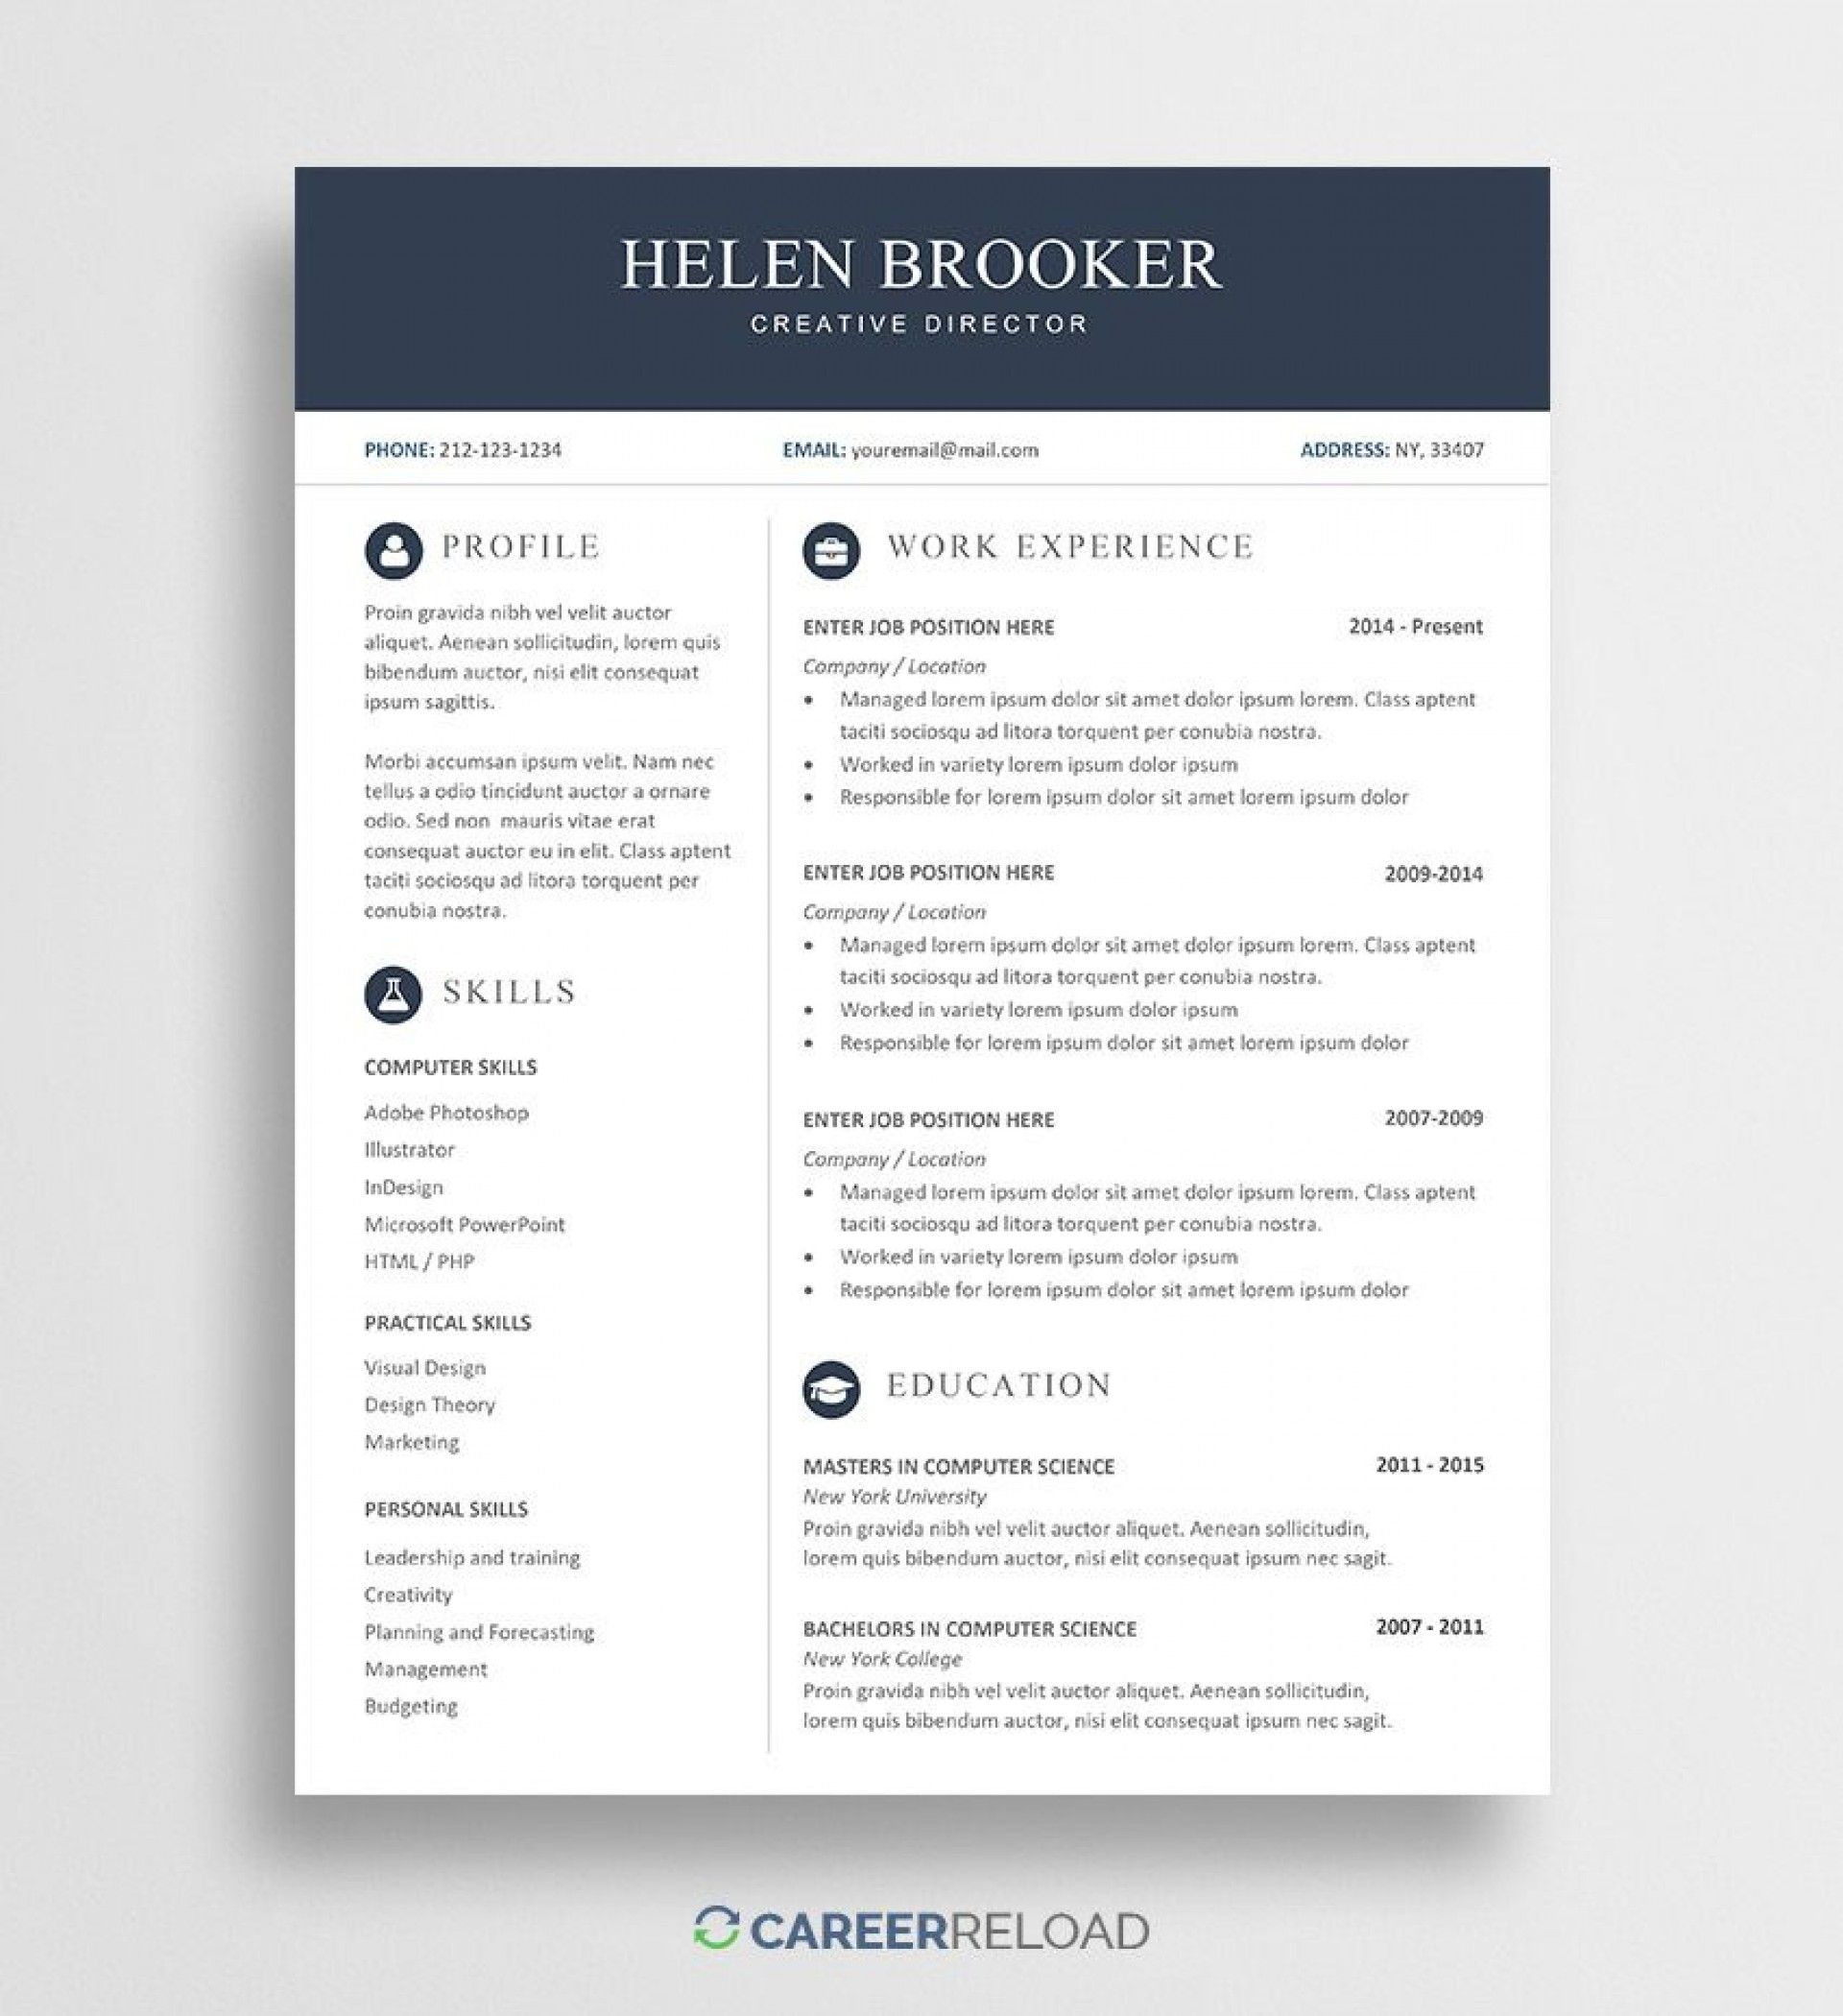 004 Simple Resume Template Download Word Image  Cv Free 2019 Example File1920